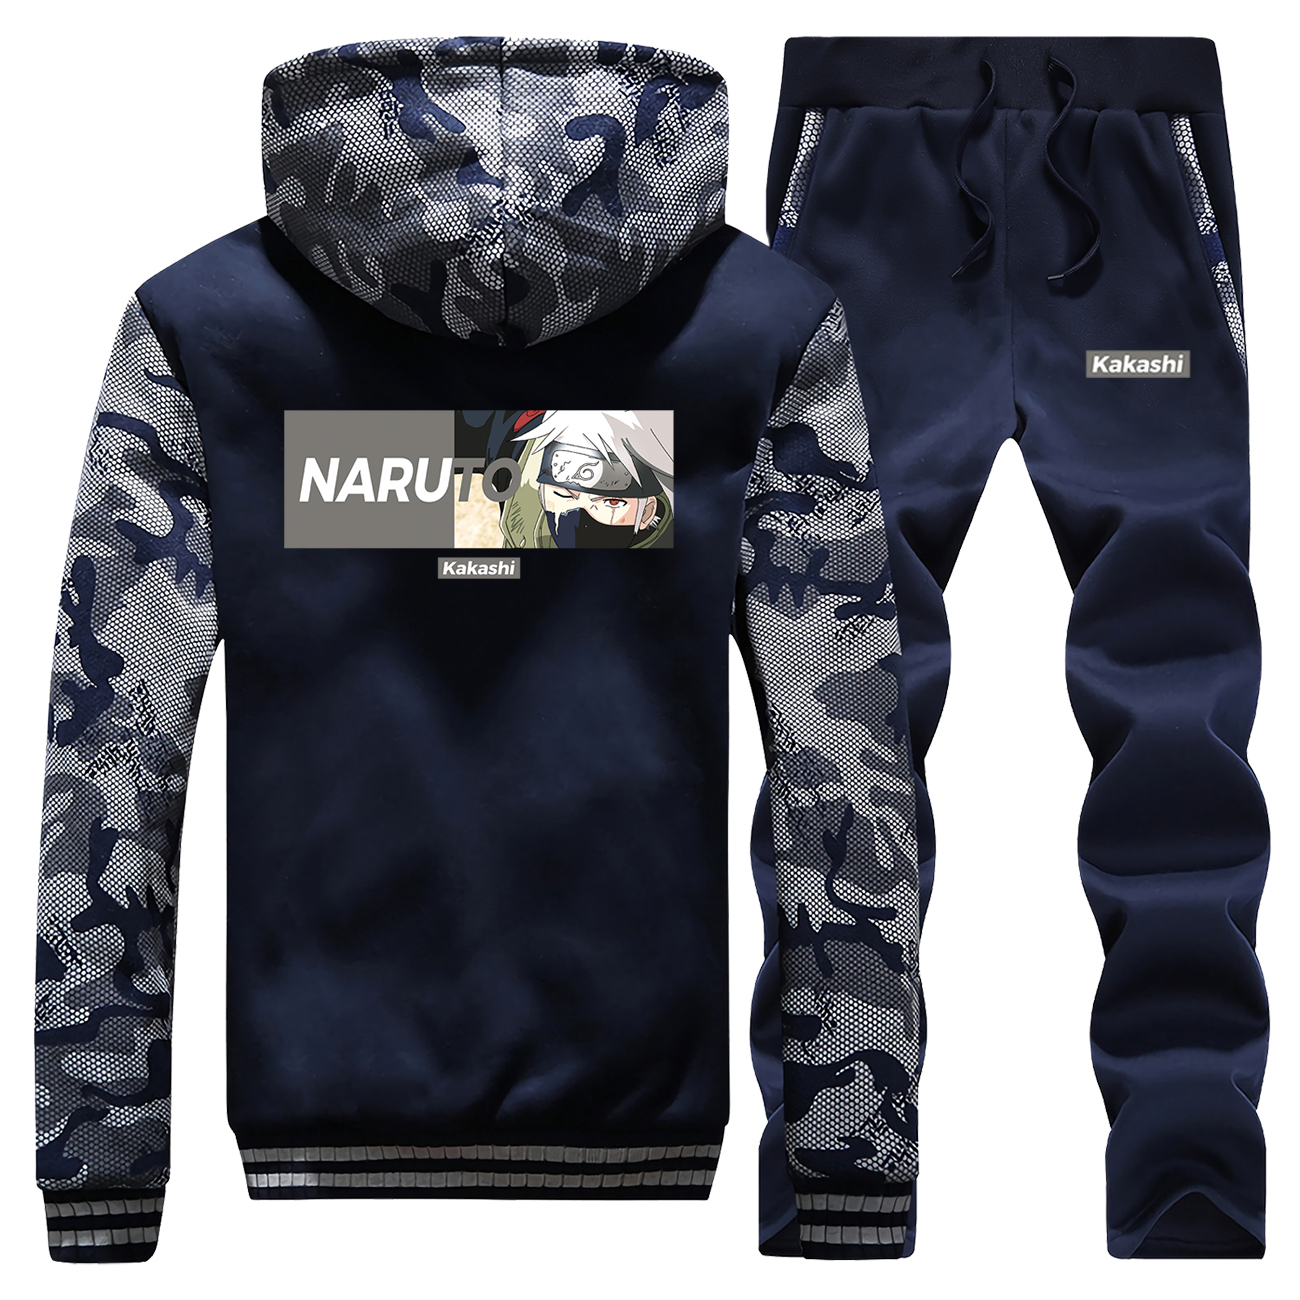 Japanese Anime Hoodies Pants Sets Men Naruto Tracksuit Coats Track Suit Winter Thick Fleece Jackets Camo Plus Size 2 Piece Sets